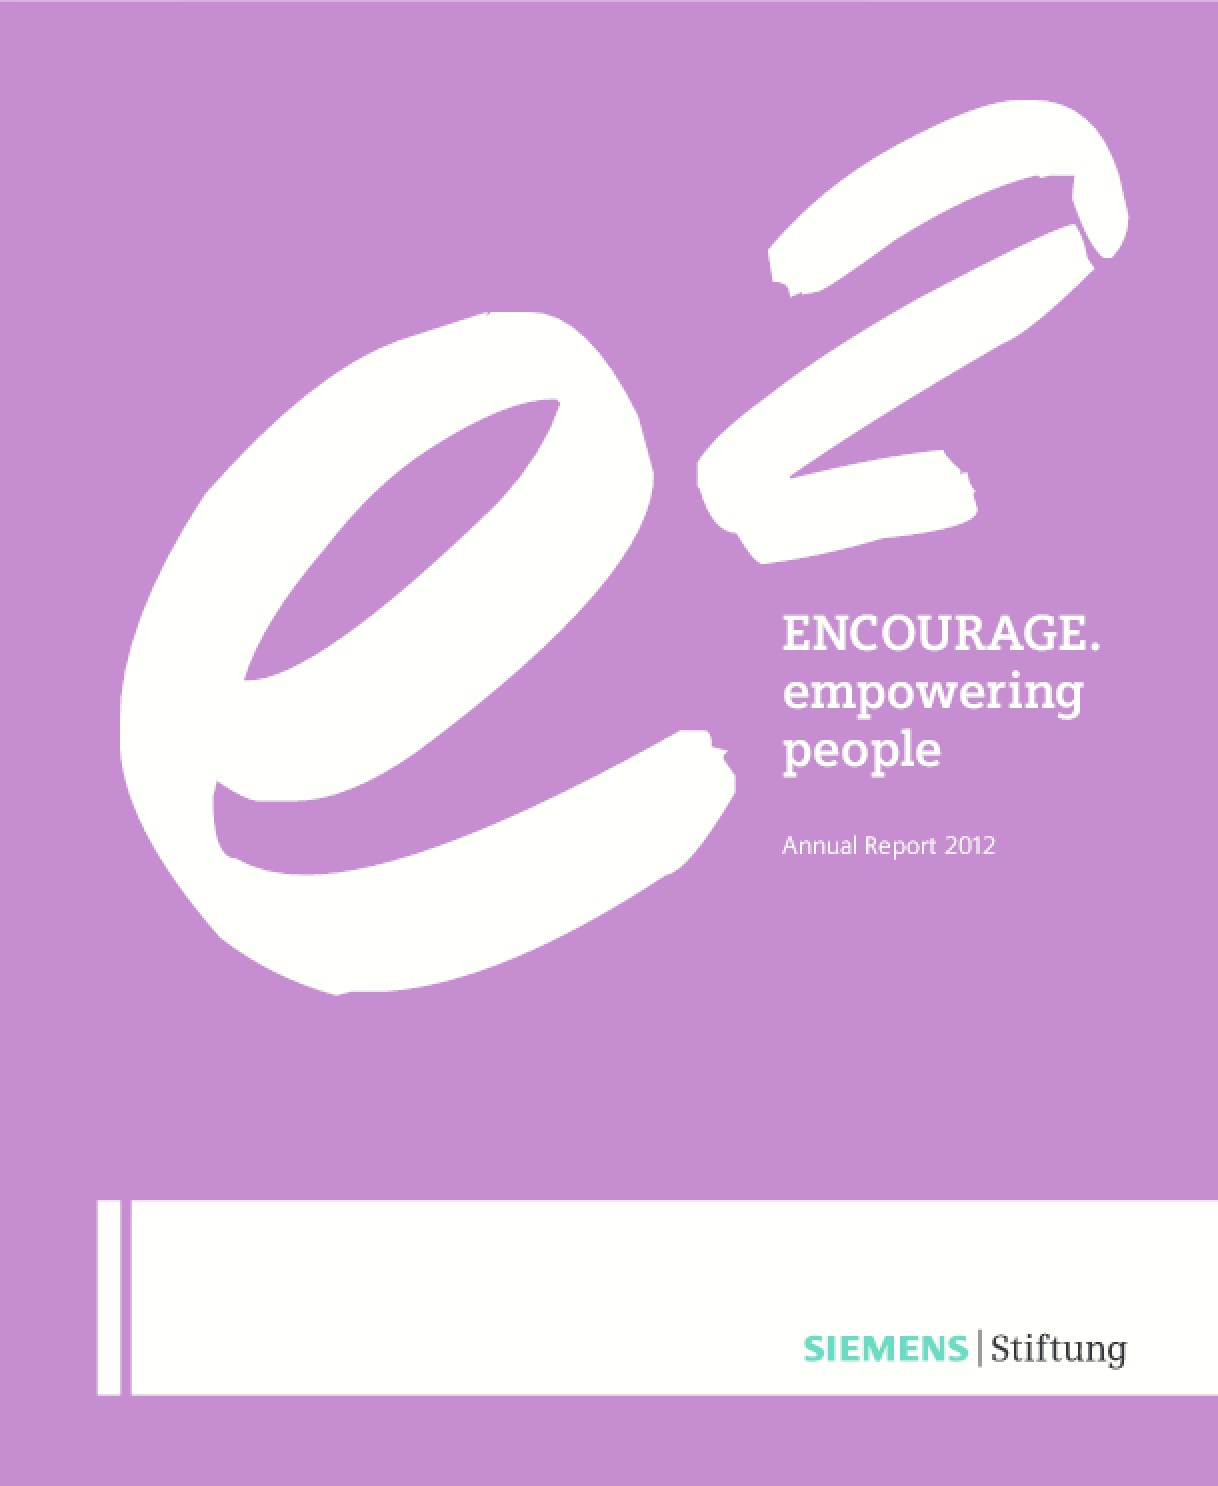 Encourage. Empowering People. Annual Report 2012